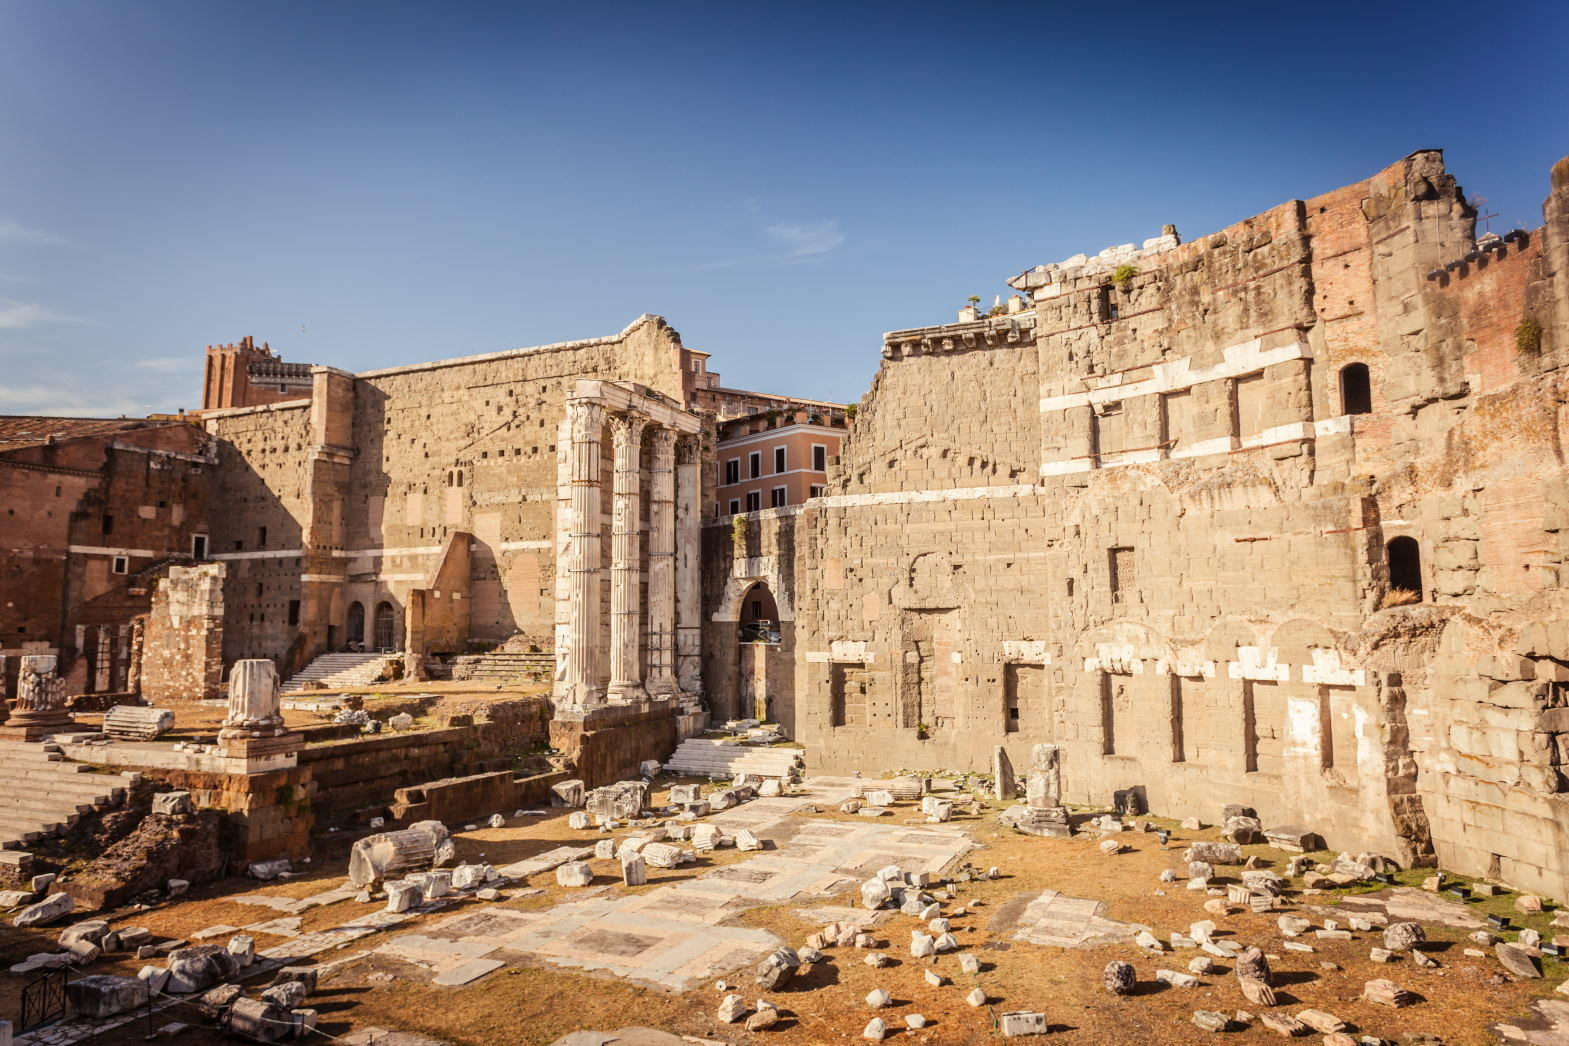 Forum of Augustus (Foro di Augusto), one of the Imperial forums of Rome.